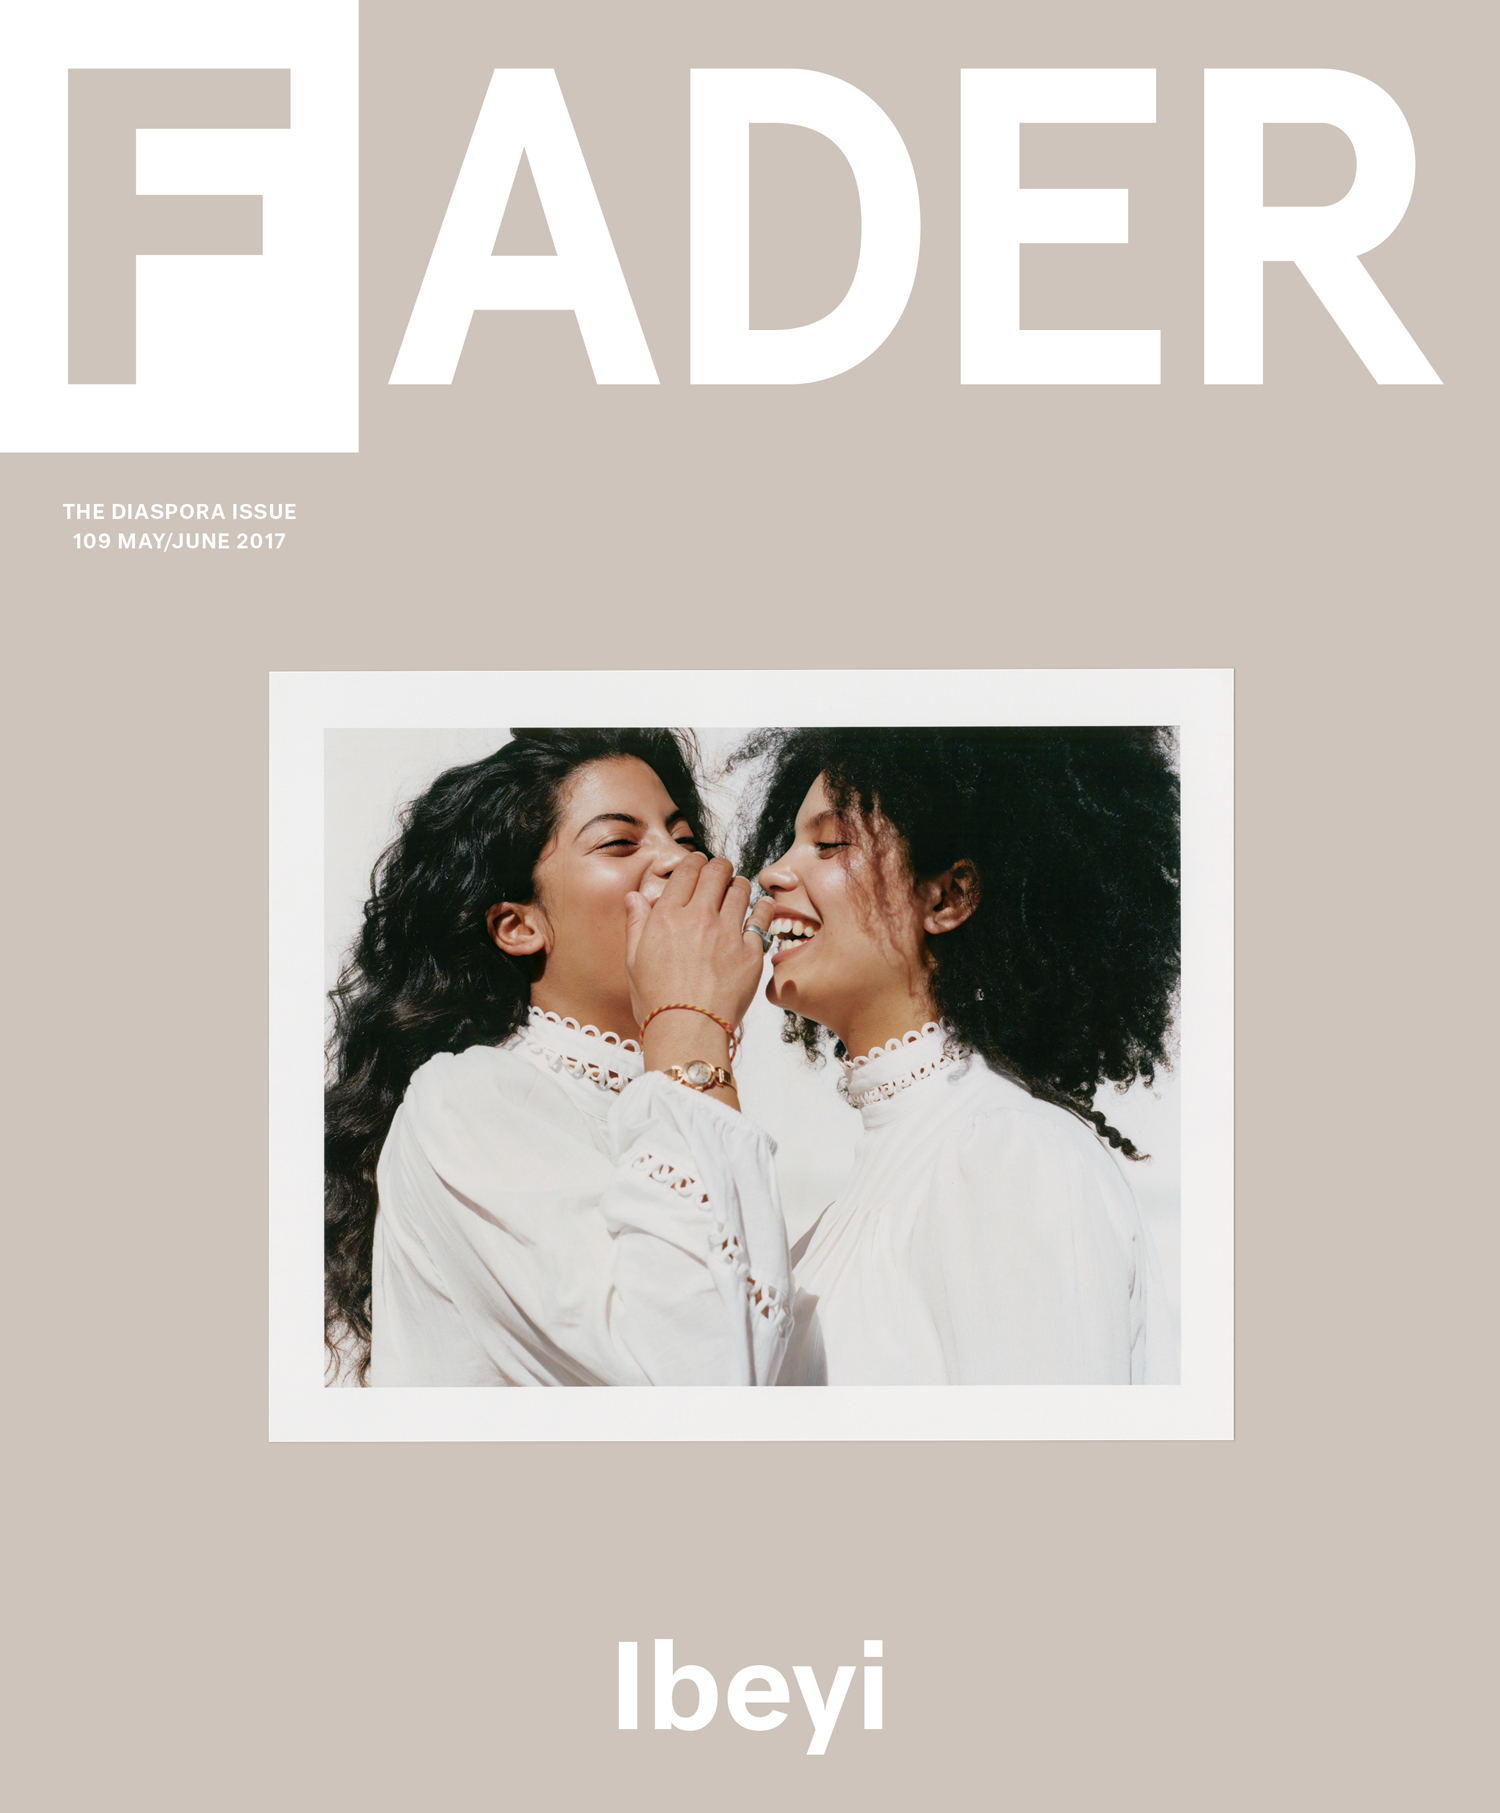 The FADER Issue 109